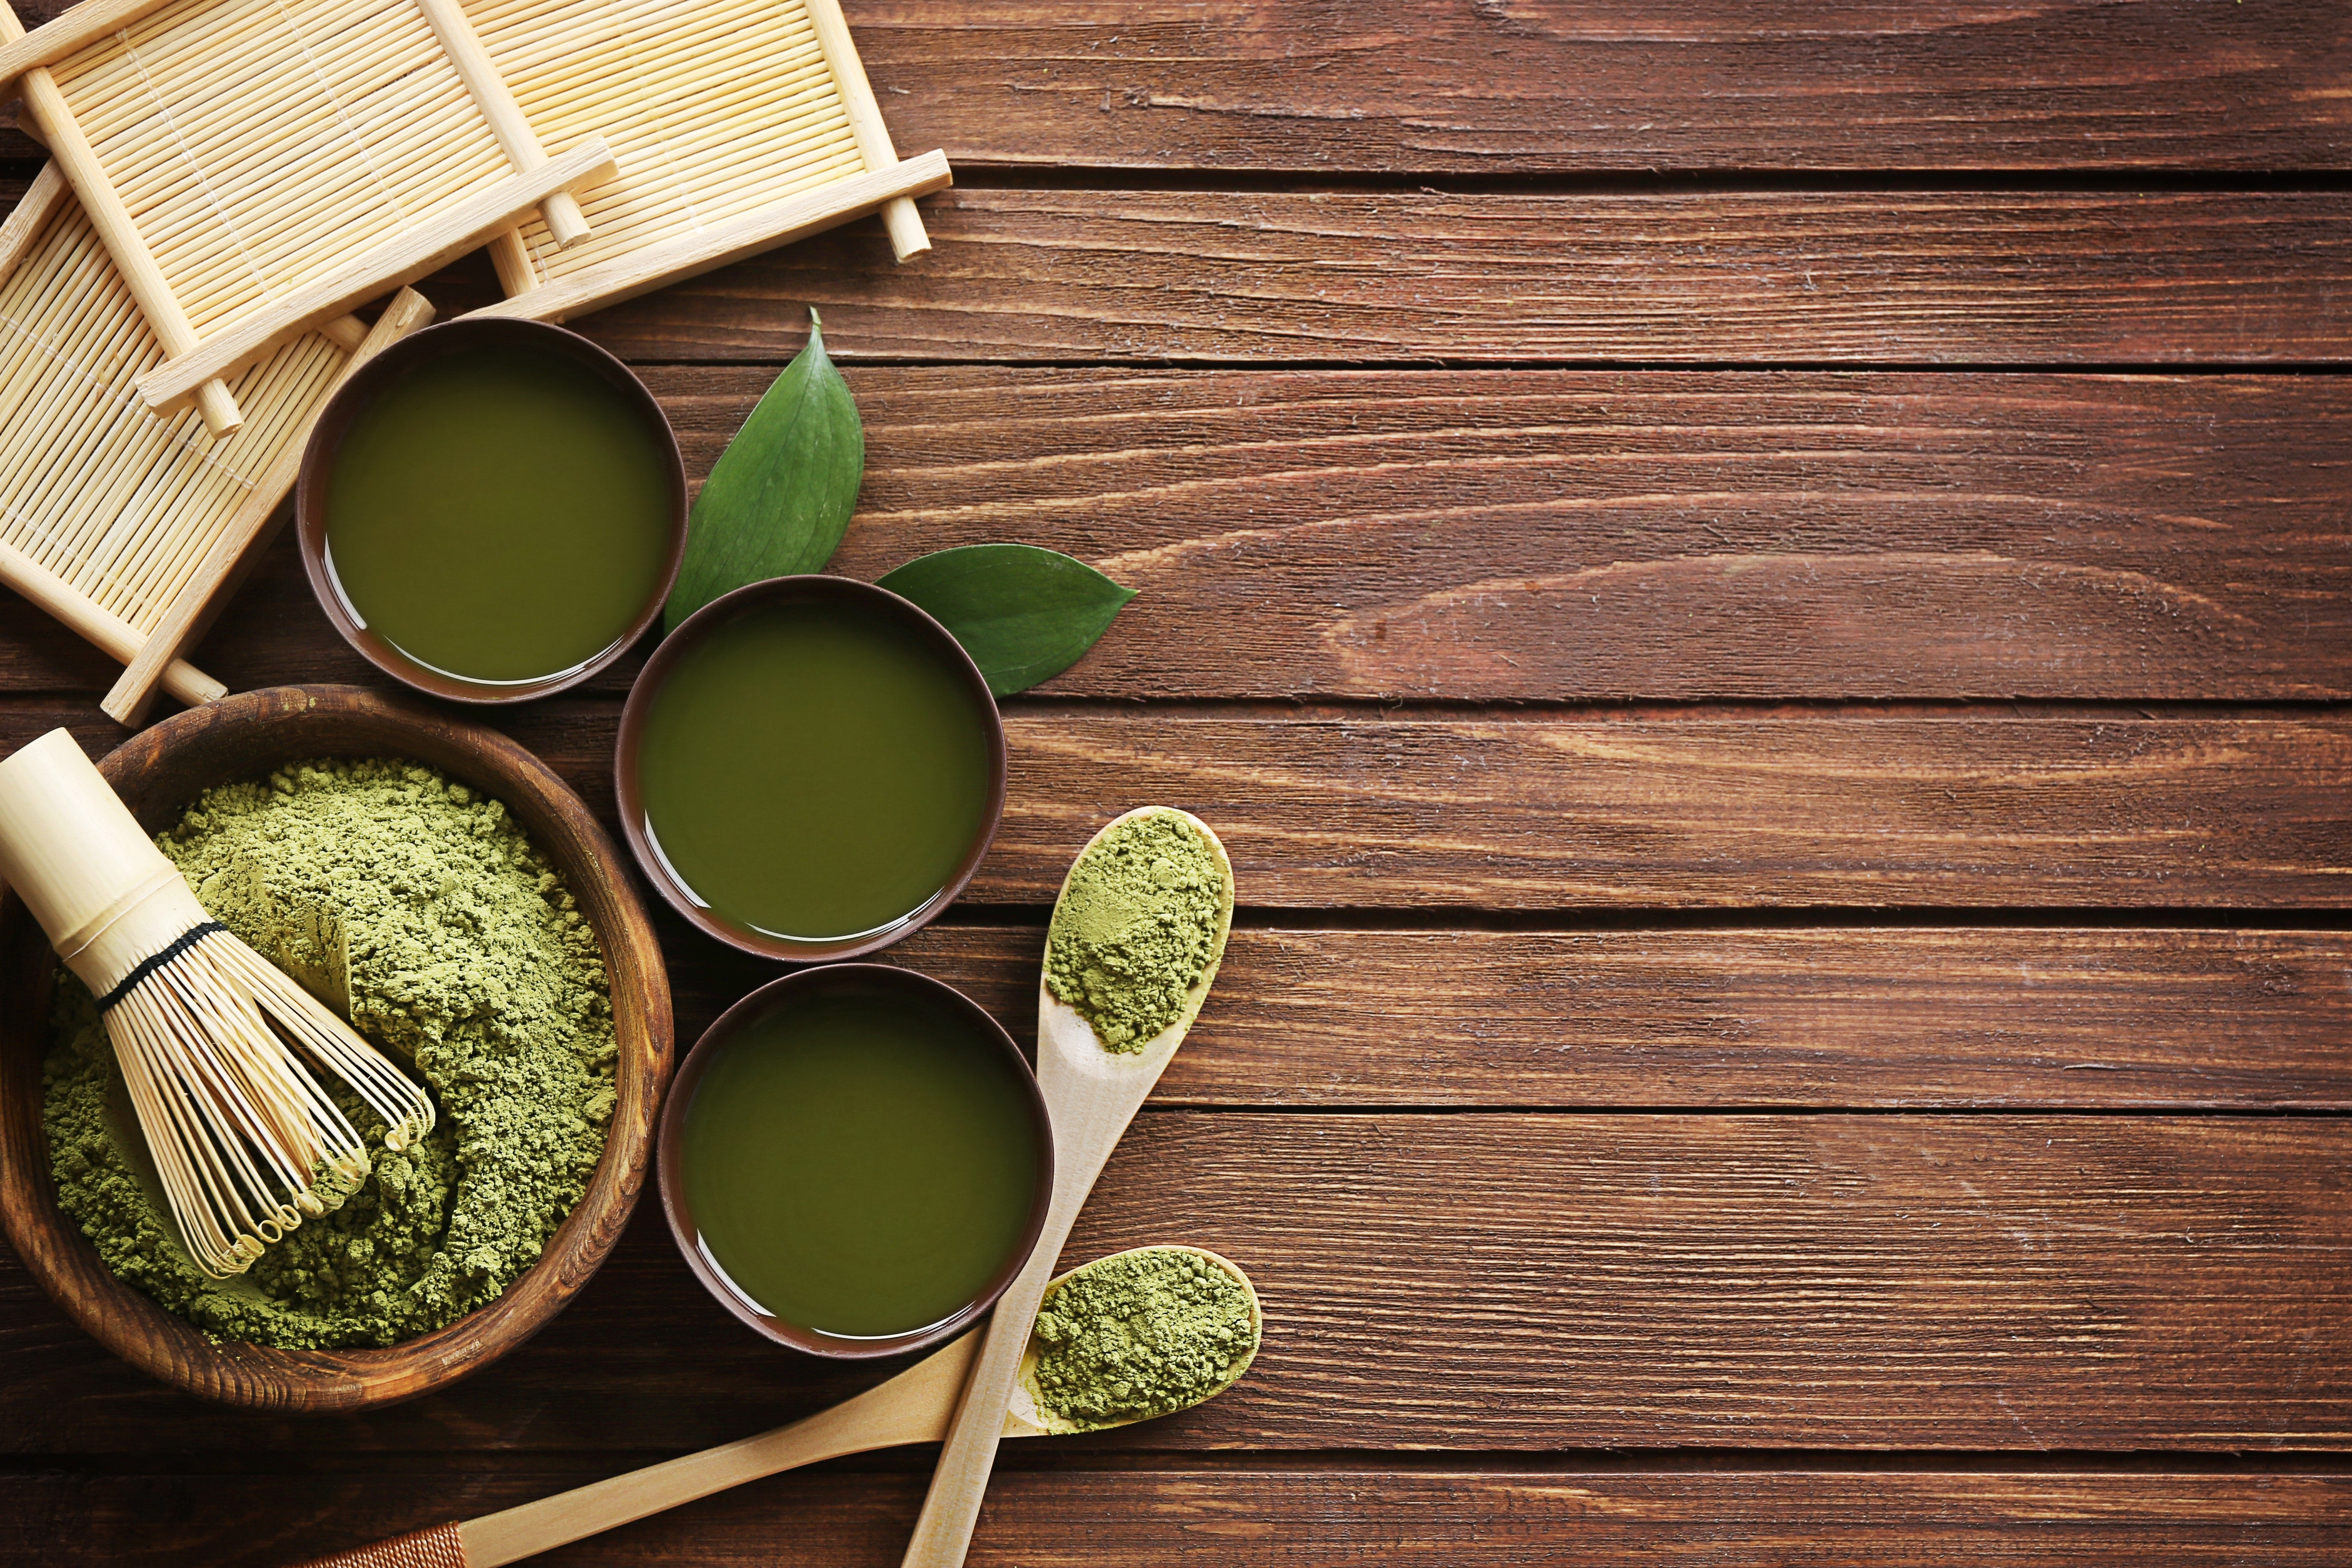 Photo of a small bowl containing green tea powder with a bamboo whisk on top, 2 small wooden spoons to the right, 3 light wooden coasters, and 3 cups of liquid green tea all on a dark wooden tabletop